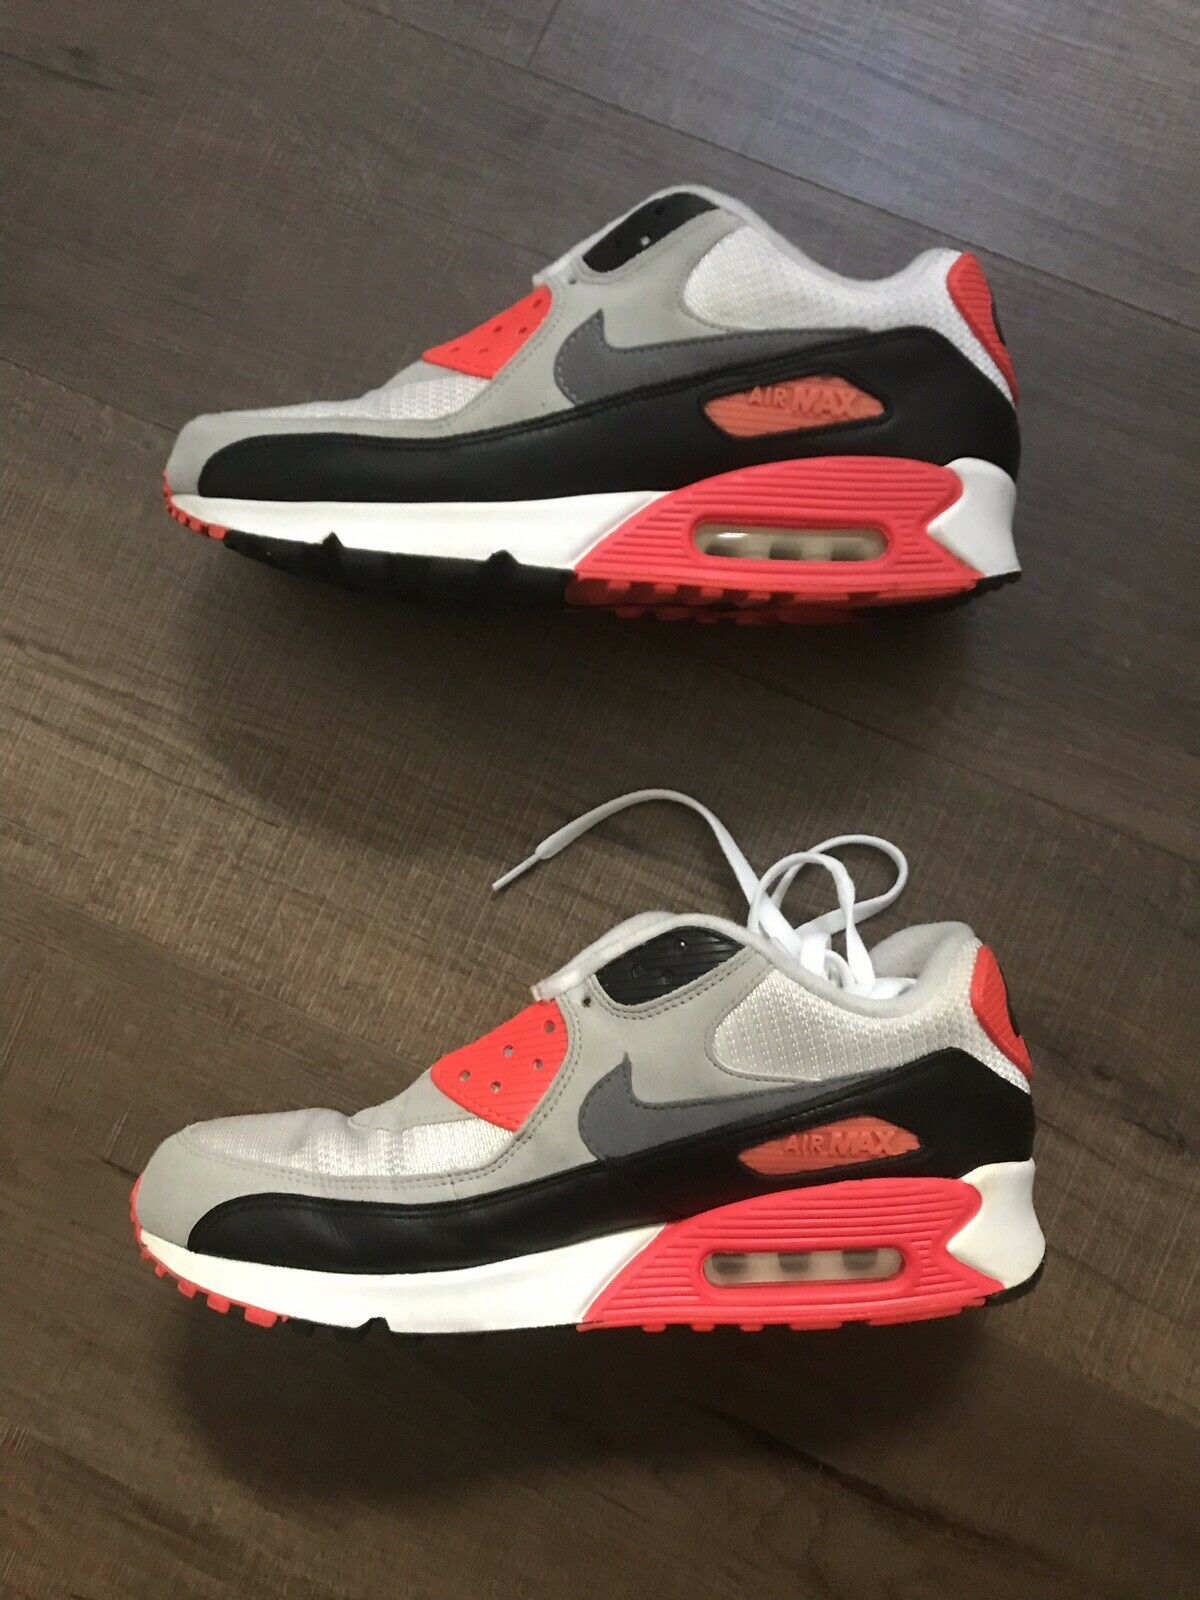 Nike Air Max 90 OG INFRARED Men's Size 10